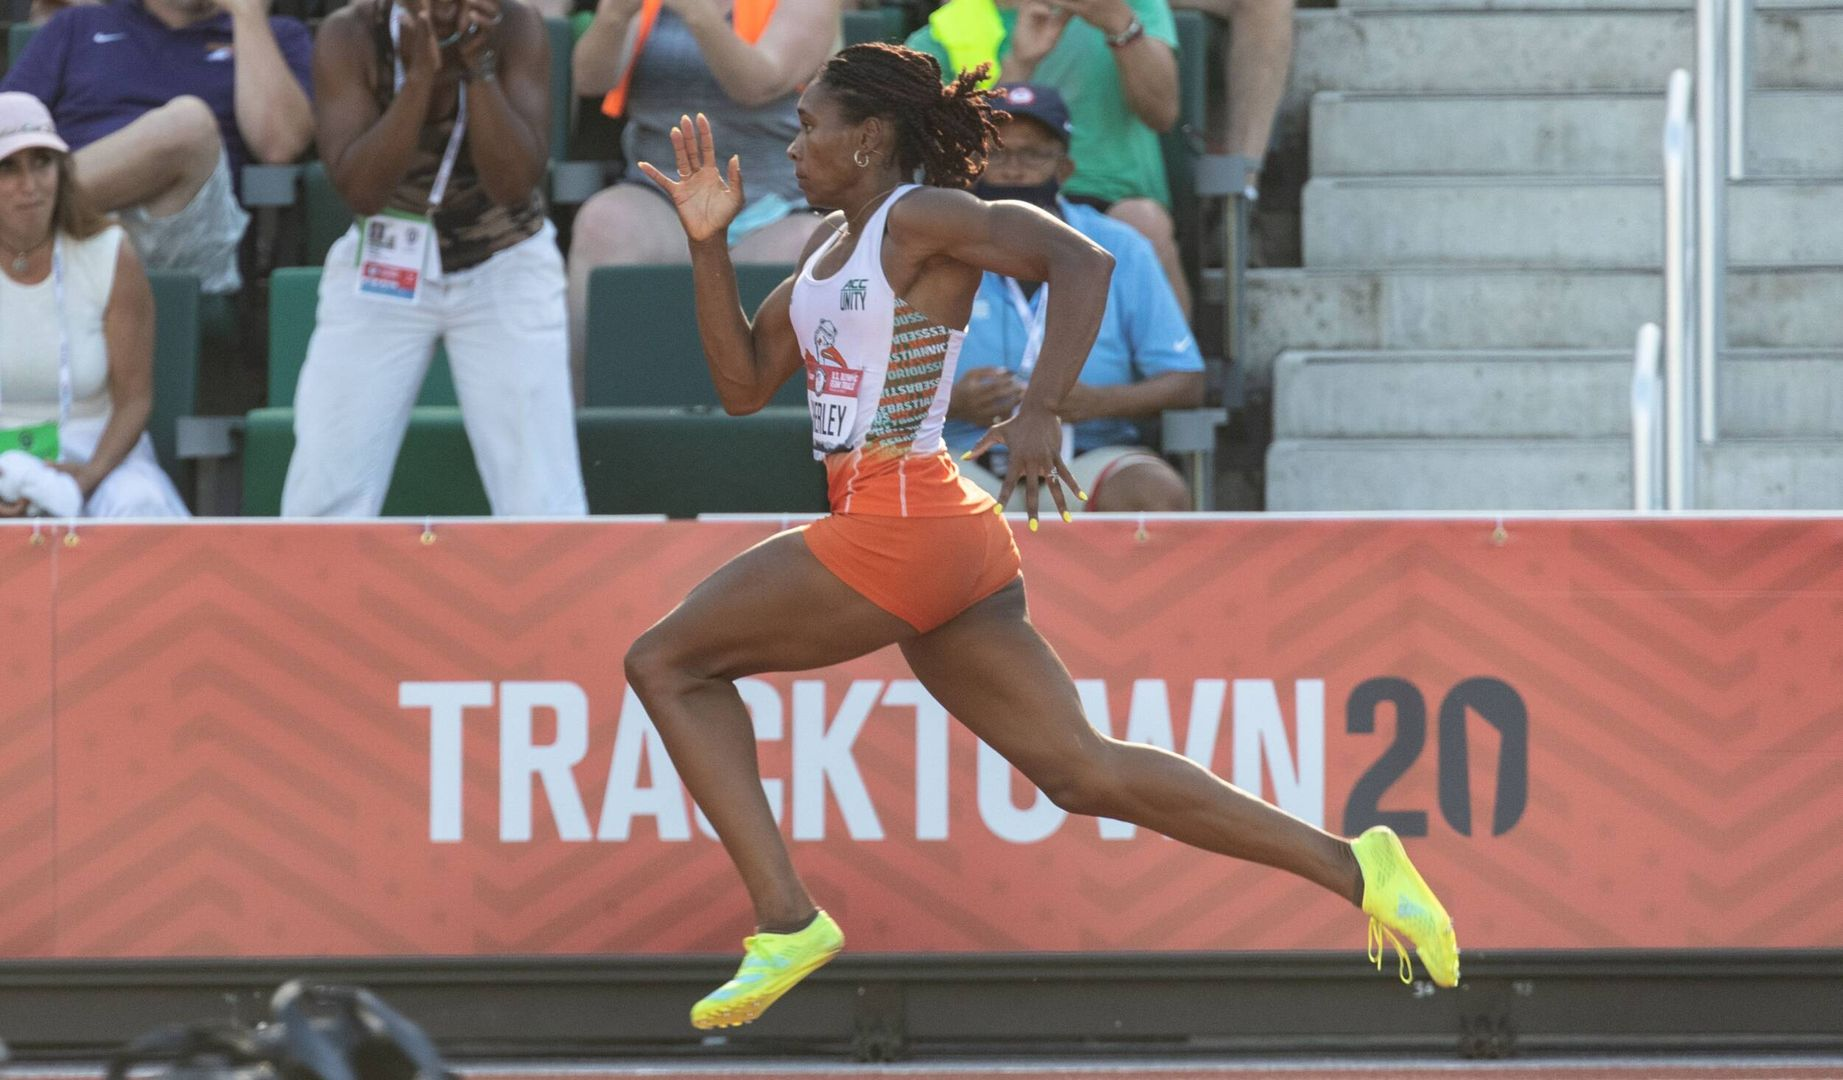 Atherley Sets PB and Program Record at Olympic Trials